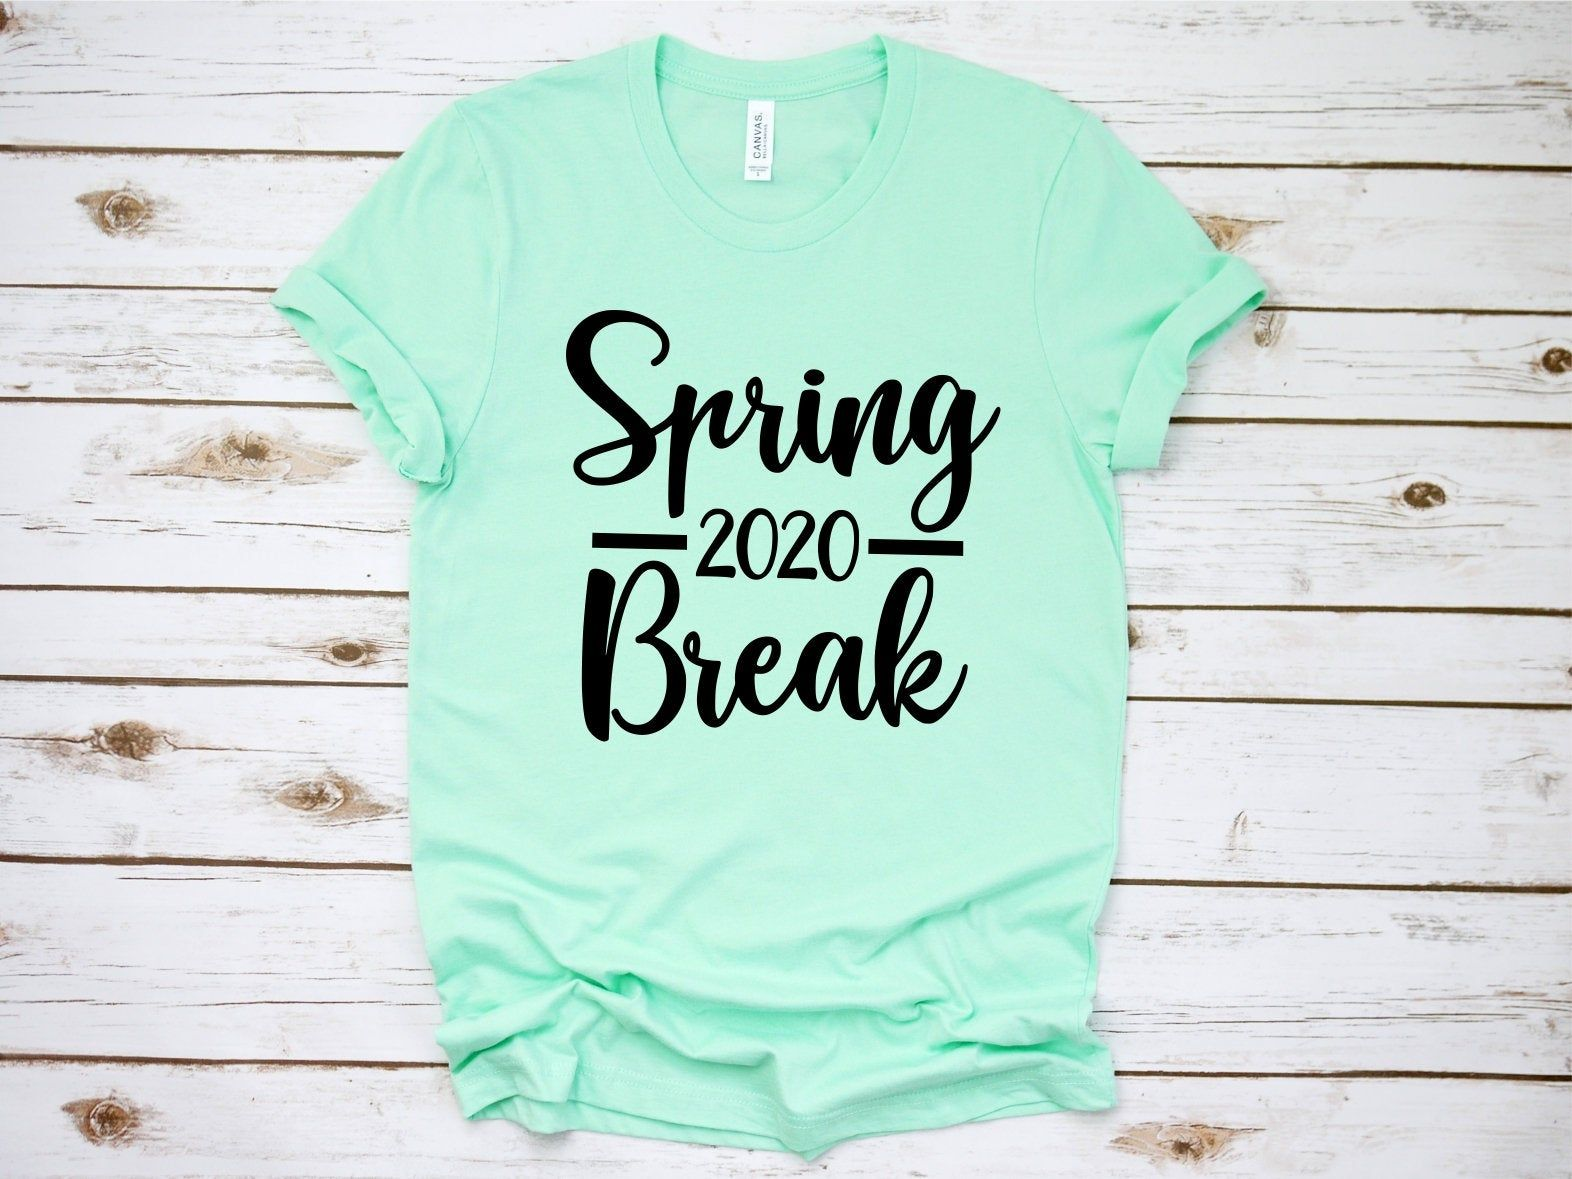 Spring Break 2020 Shirt, Spring Break outfit, Spring Break tee, Vacation Shirt, beach shirt, best friend shirts, best friend outfit